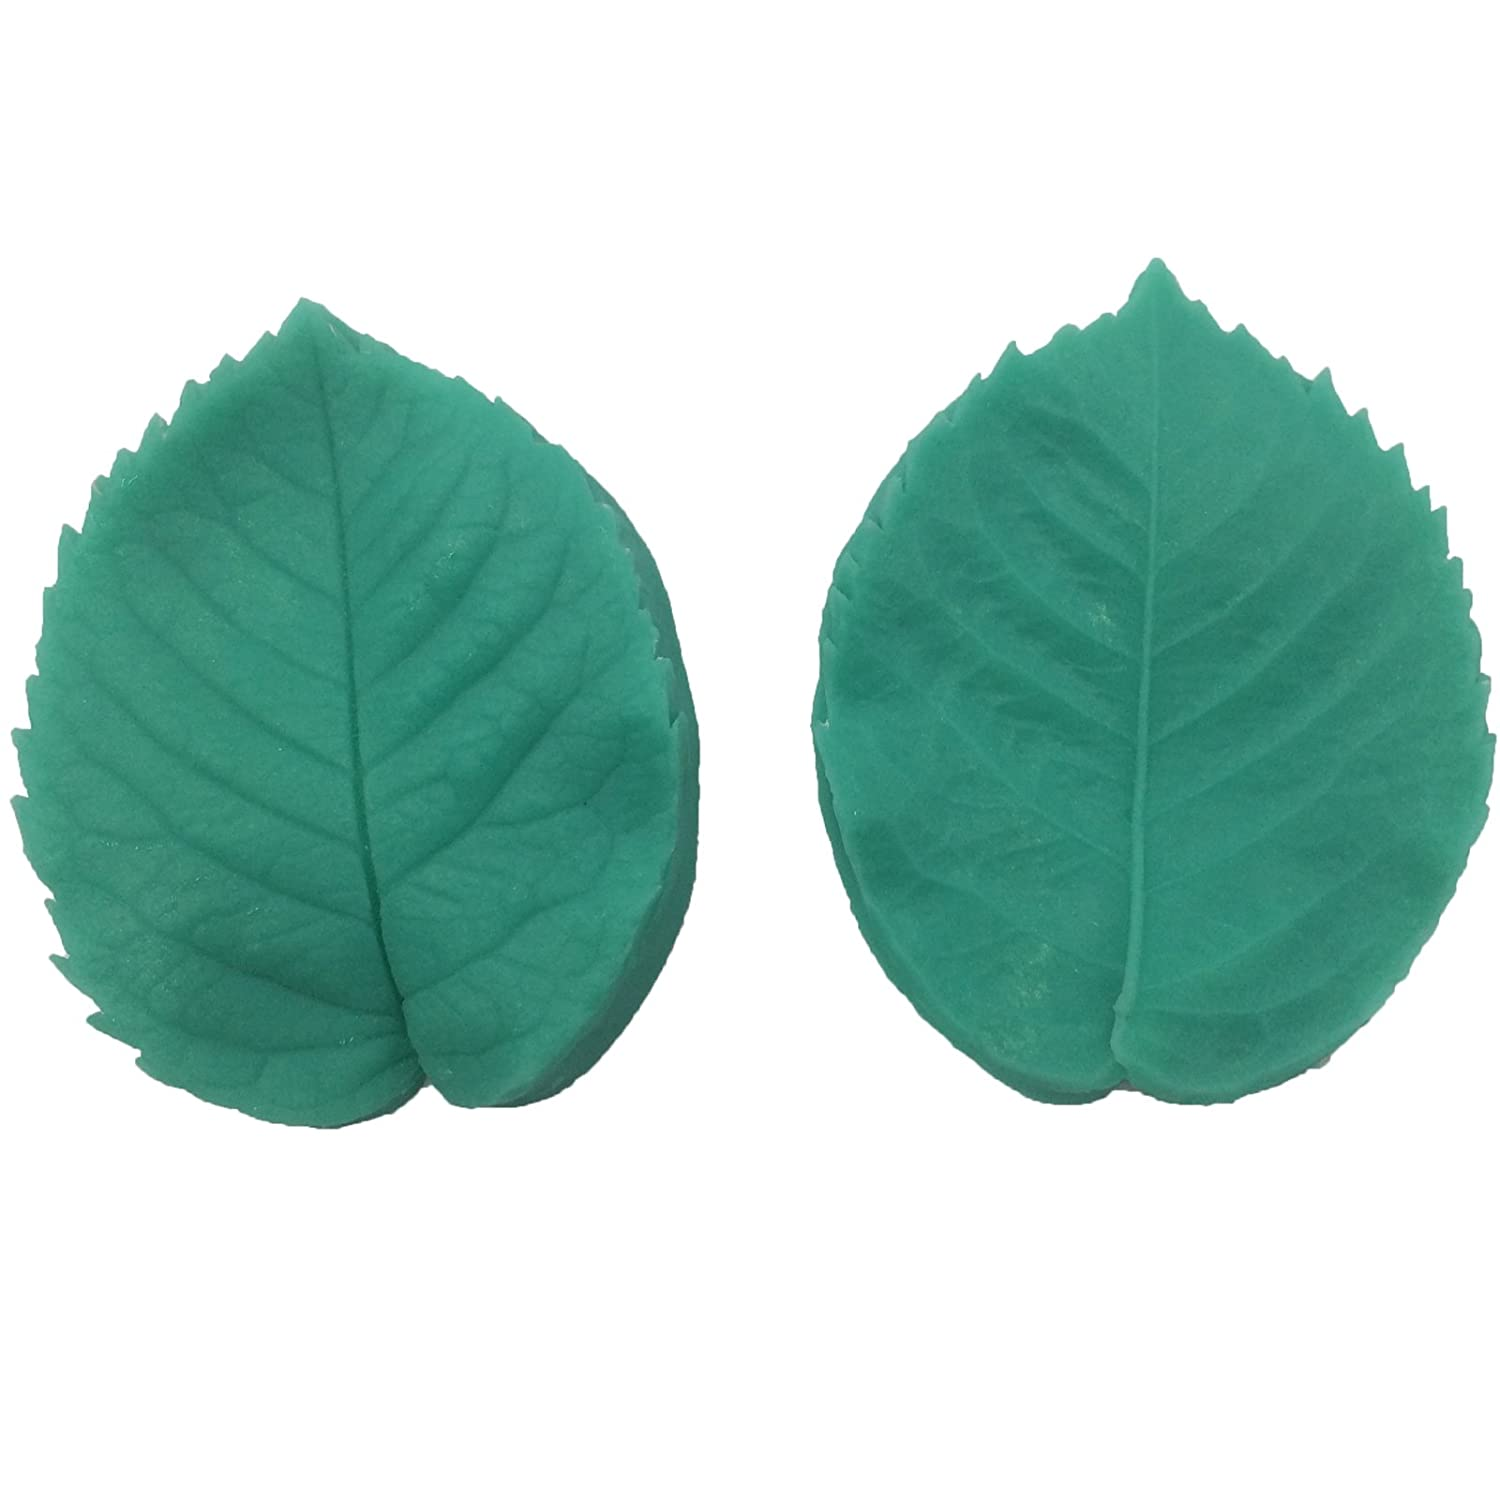 Sugarcraft Art All Purpose ROSE Flower vein foliage LEAF Double Veiner Fondant icing silicone icing leaves veiners mould, non stick Sugar paste, Butter, Resin, Polymer Clay, fimo, gum paste, PMC, Wax, Candle, Soap mold, 8*6.3cm thickness- around 1cm per le